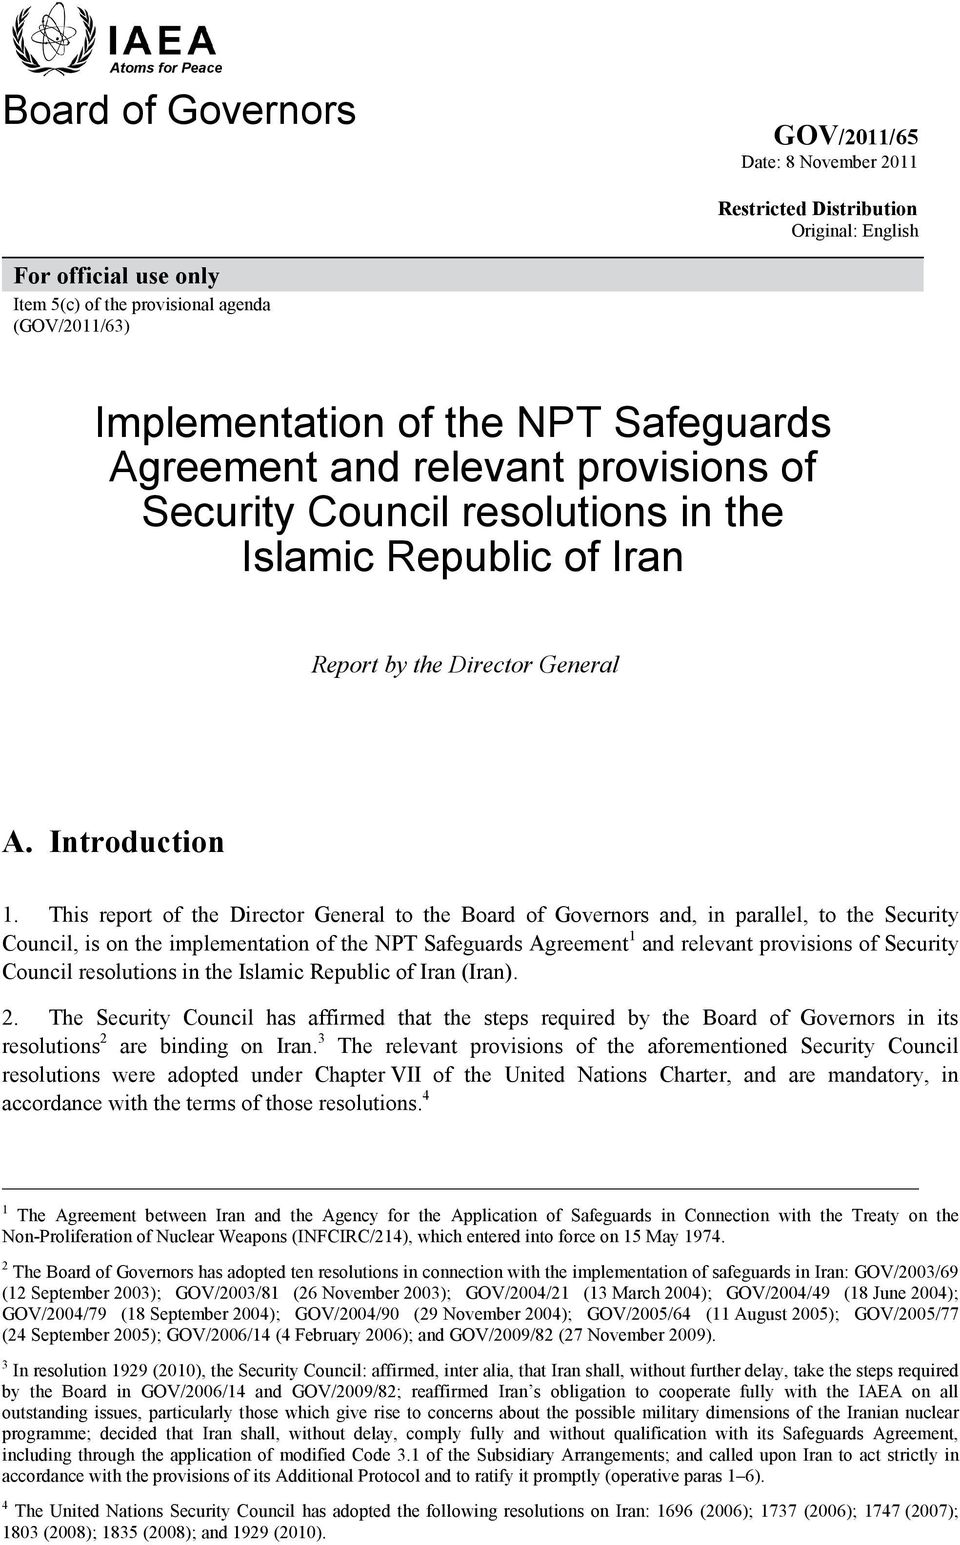 This report of the Director General to the Board of Governors and, in parallel, to the Security Council, is on the implementation of the NPT Safeguards Agreement 1 and relevant provisions of Security